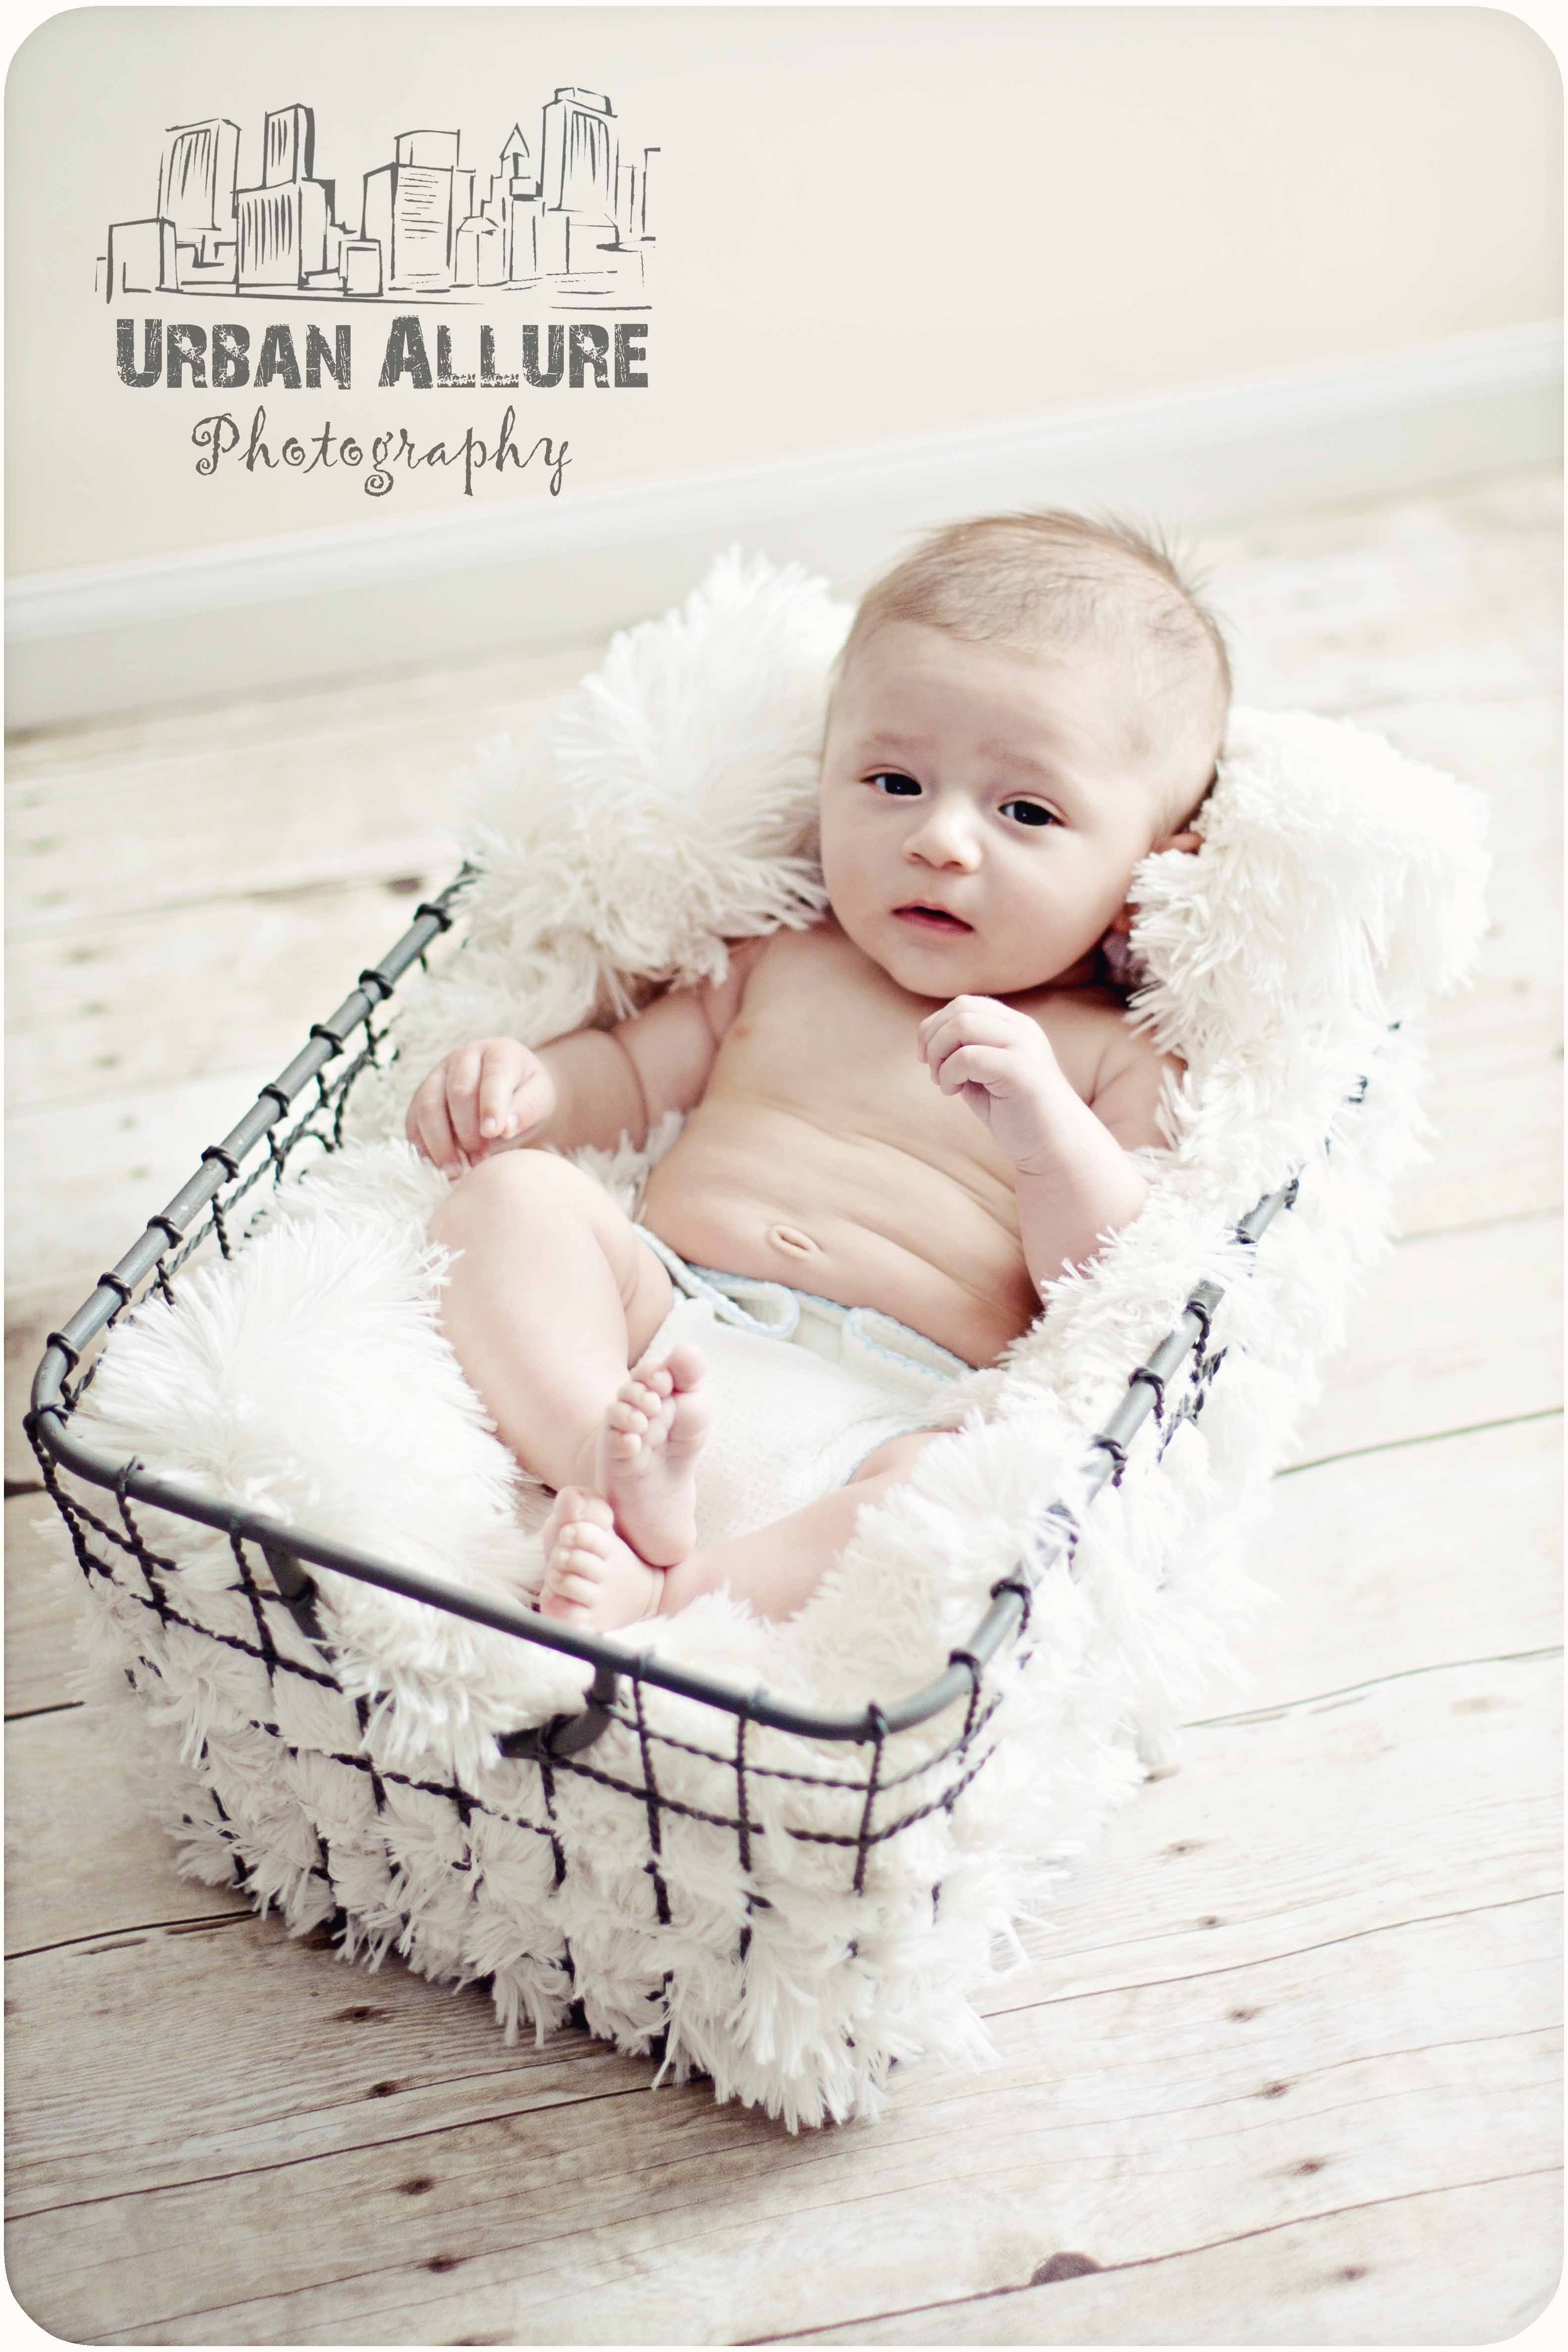 10 Stylish 3 Month Baby Boy Picture Ideas for judsons three month pictures perhaps photography pinterest 10 2021